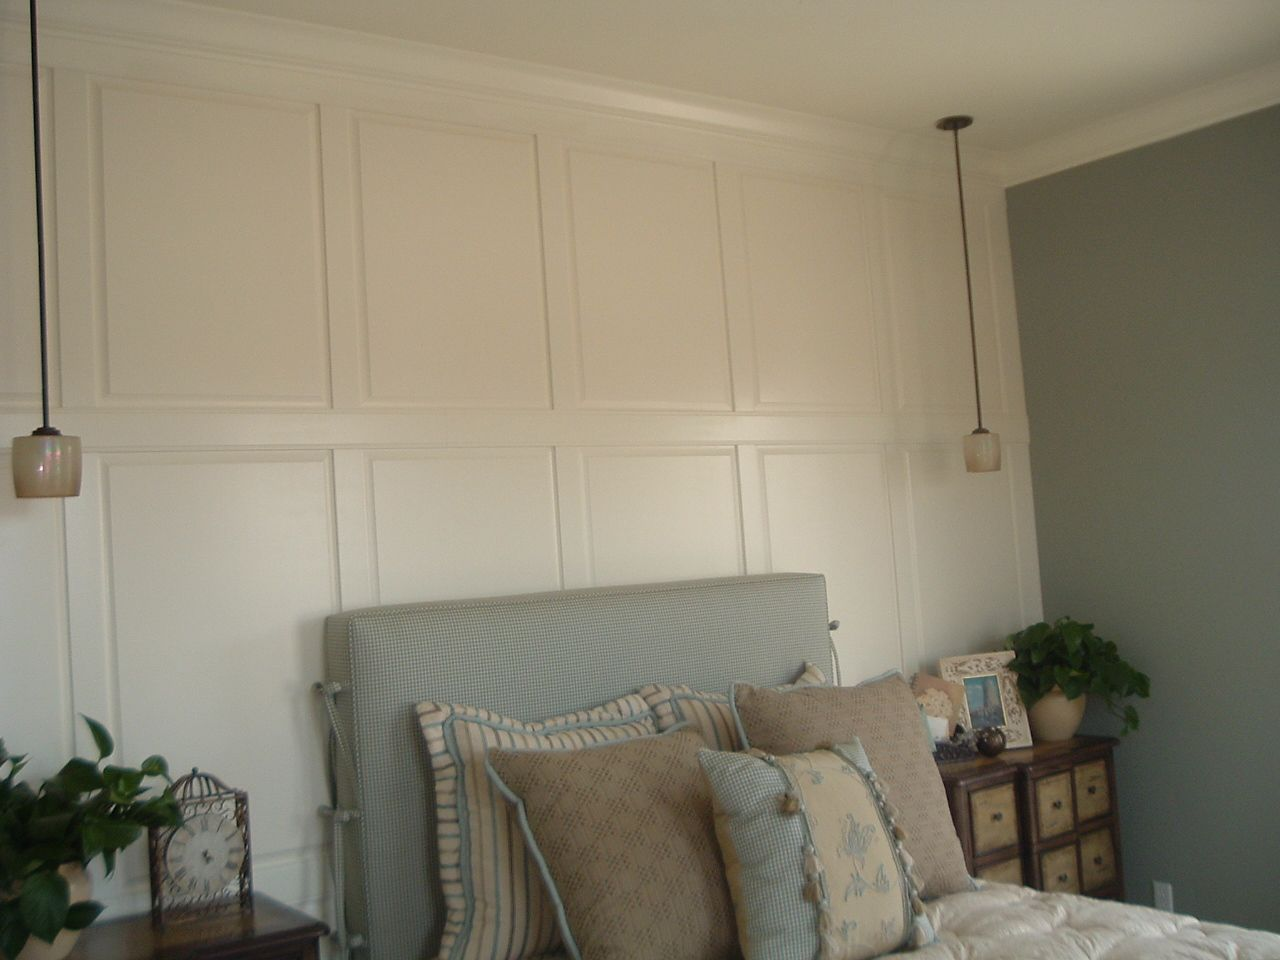 Wainscoting wall panels google search ideas for the Images of wainscoting in bedrooms